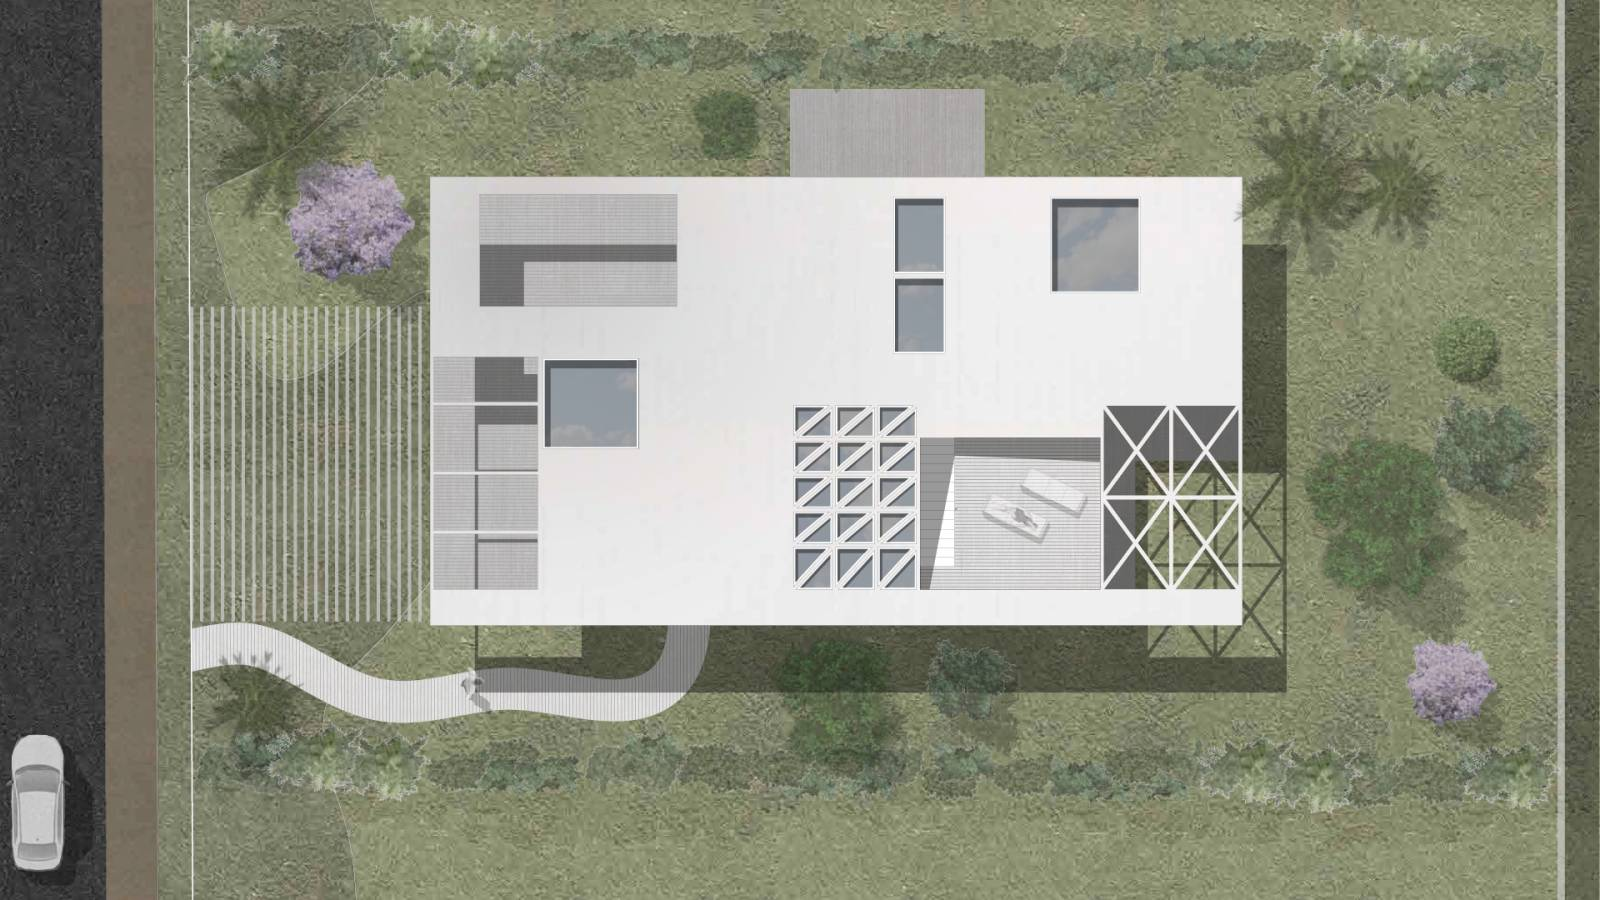 HOUSE #5 - ROOF PLAN - 6 case study houses - SPOL Architects